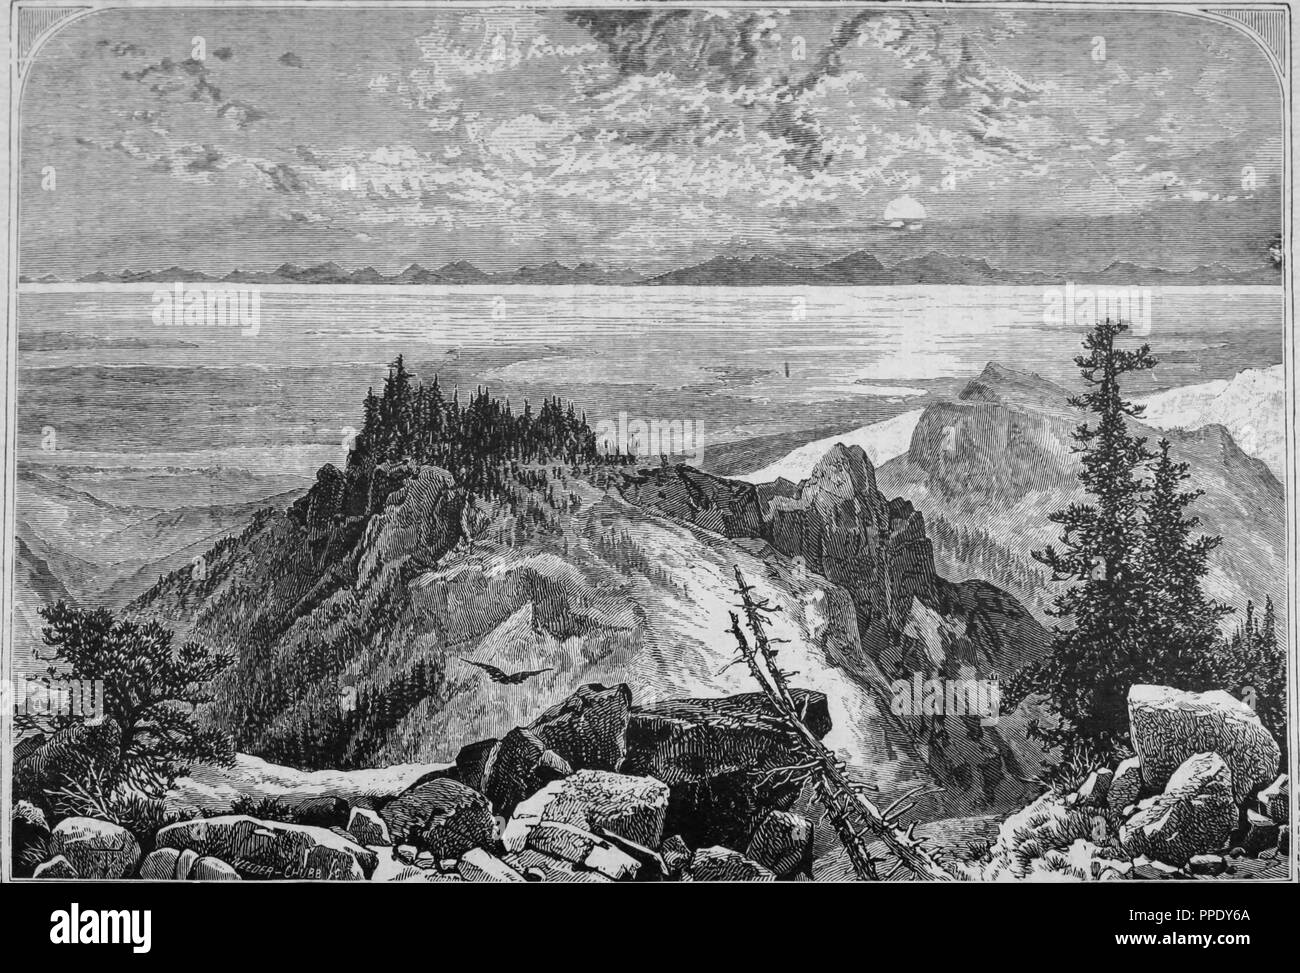 Engraving of the Great Salt Lake viewed from the Wahsatch Mountains, from the book 'The Pacific tourist', 1877. Courtesy Internet Archive. () - Stock Image